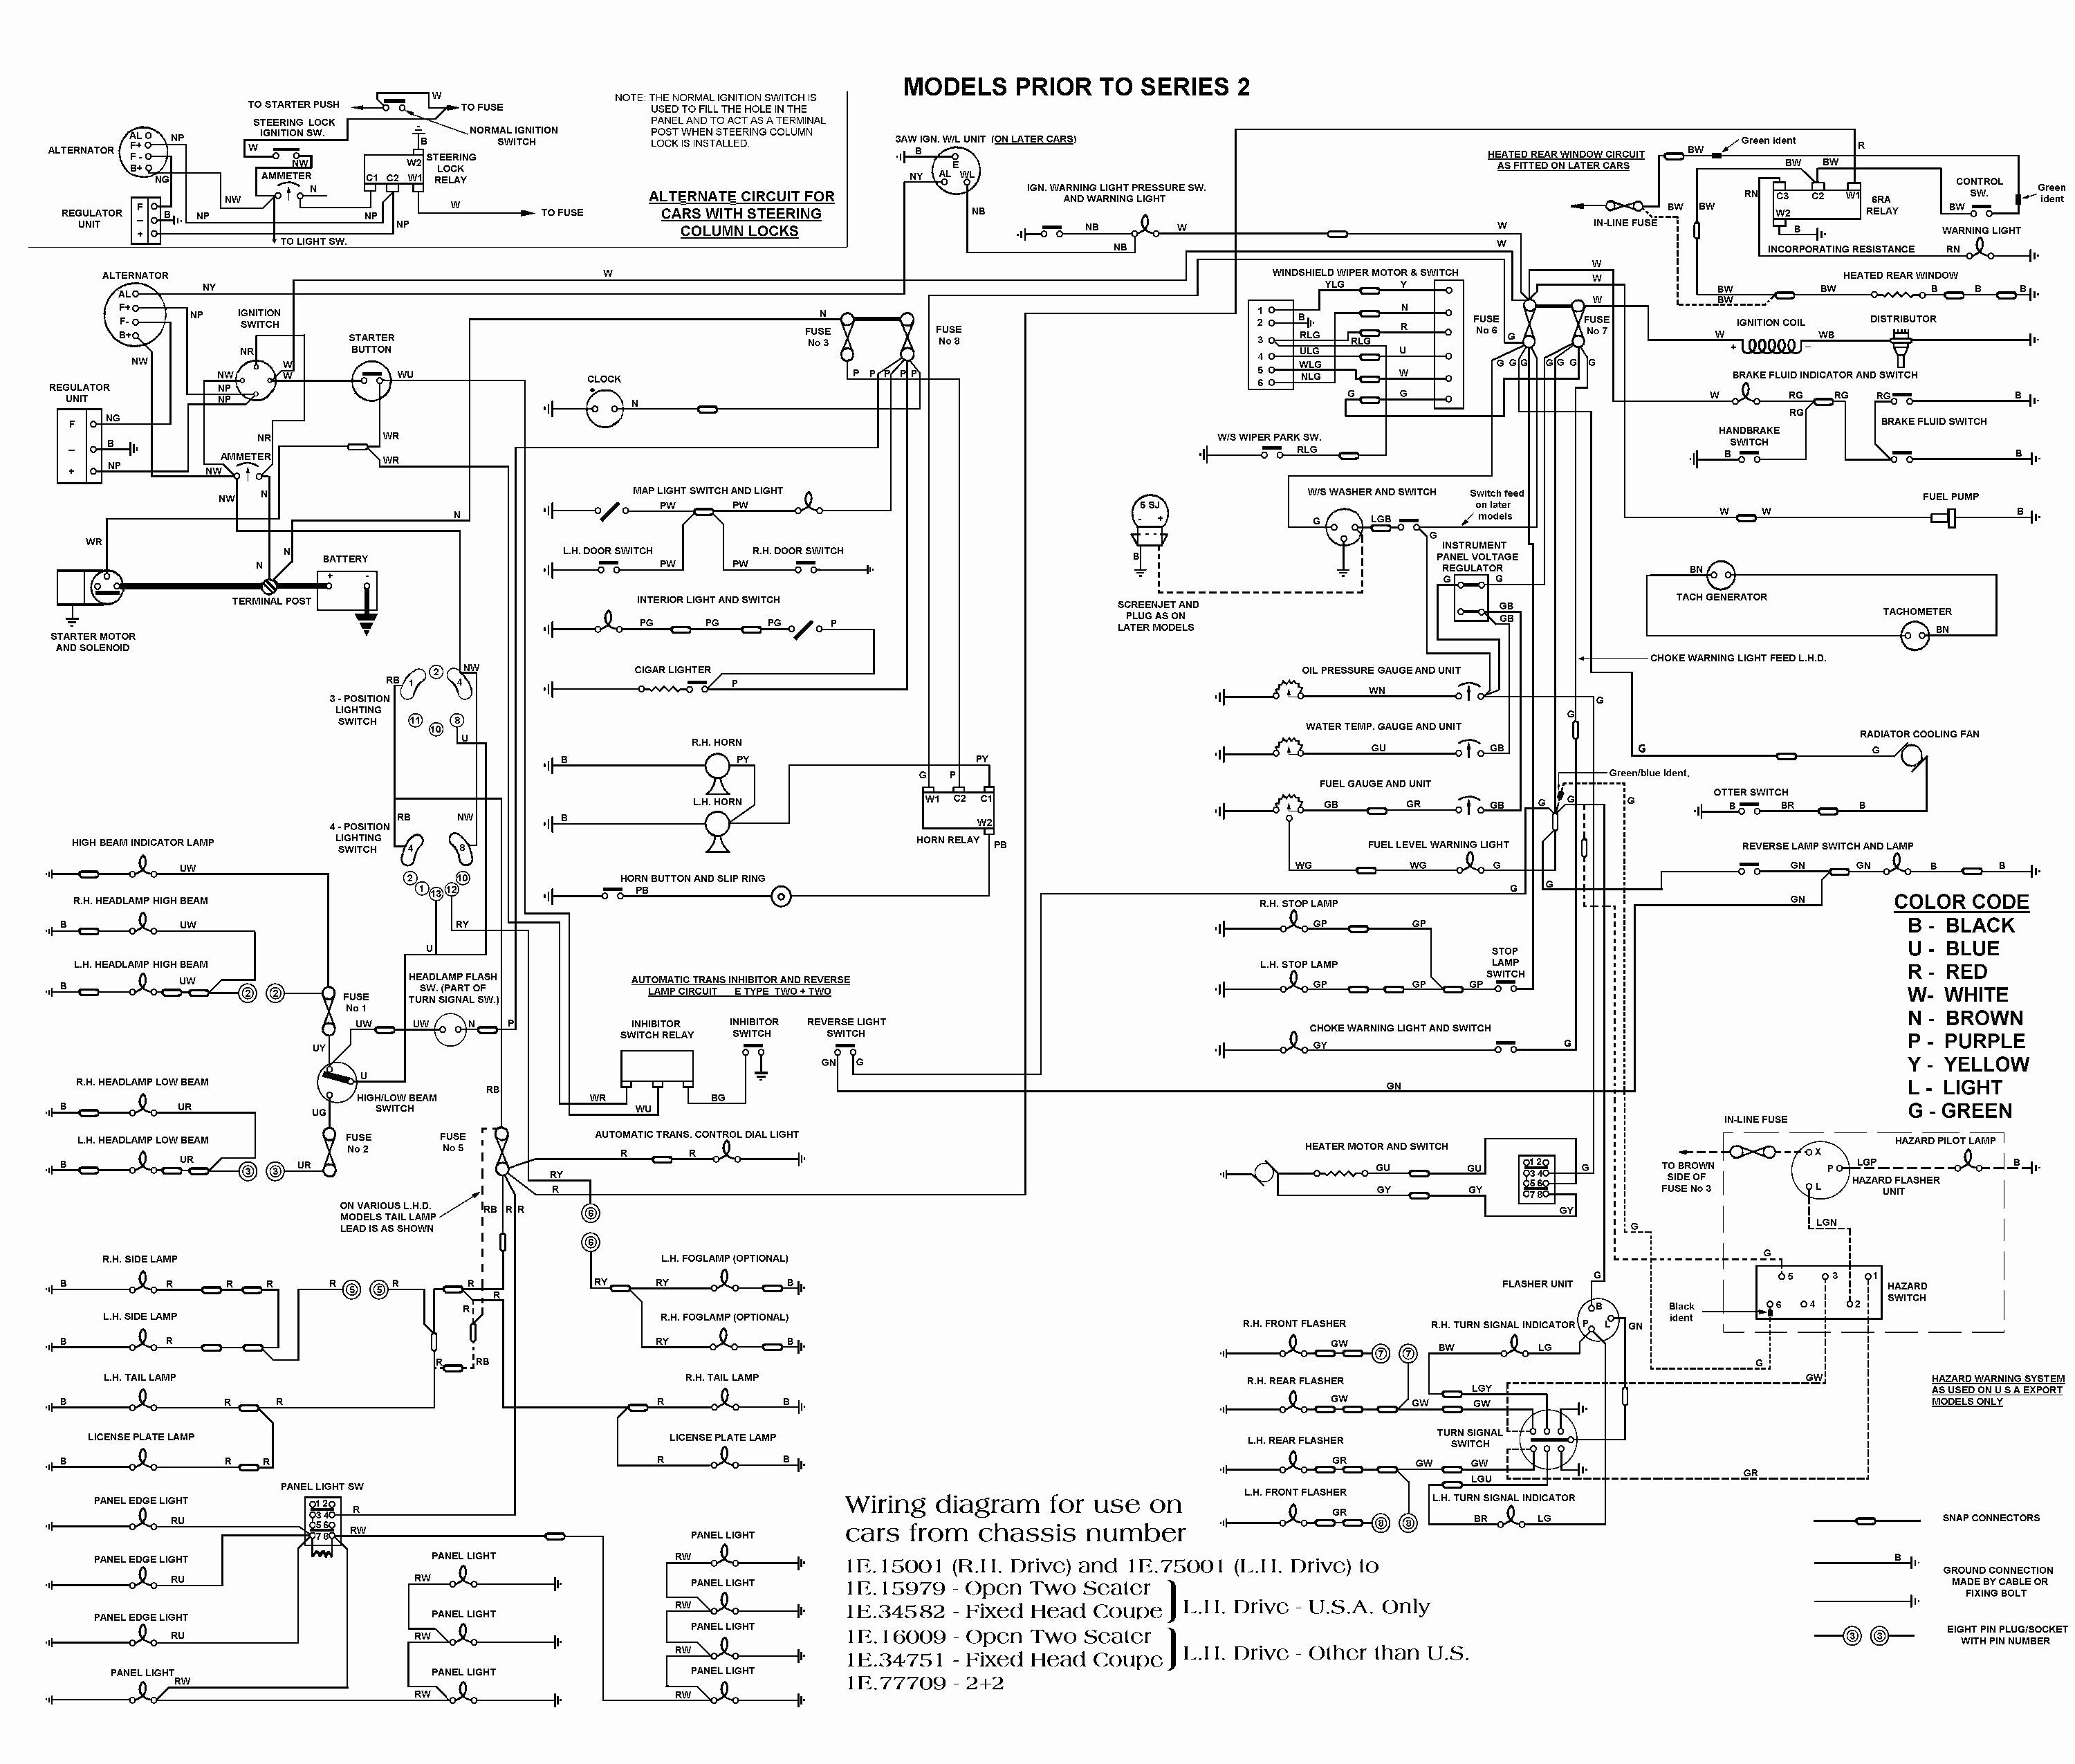 Awe Inspiring Isspro Gauge Wiring Diagram Simple Wiring Diagram 40 Fresh Isspro Wiring Cloud Staixuggs Outletorg